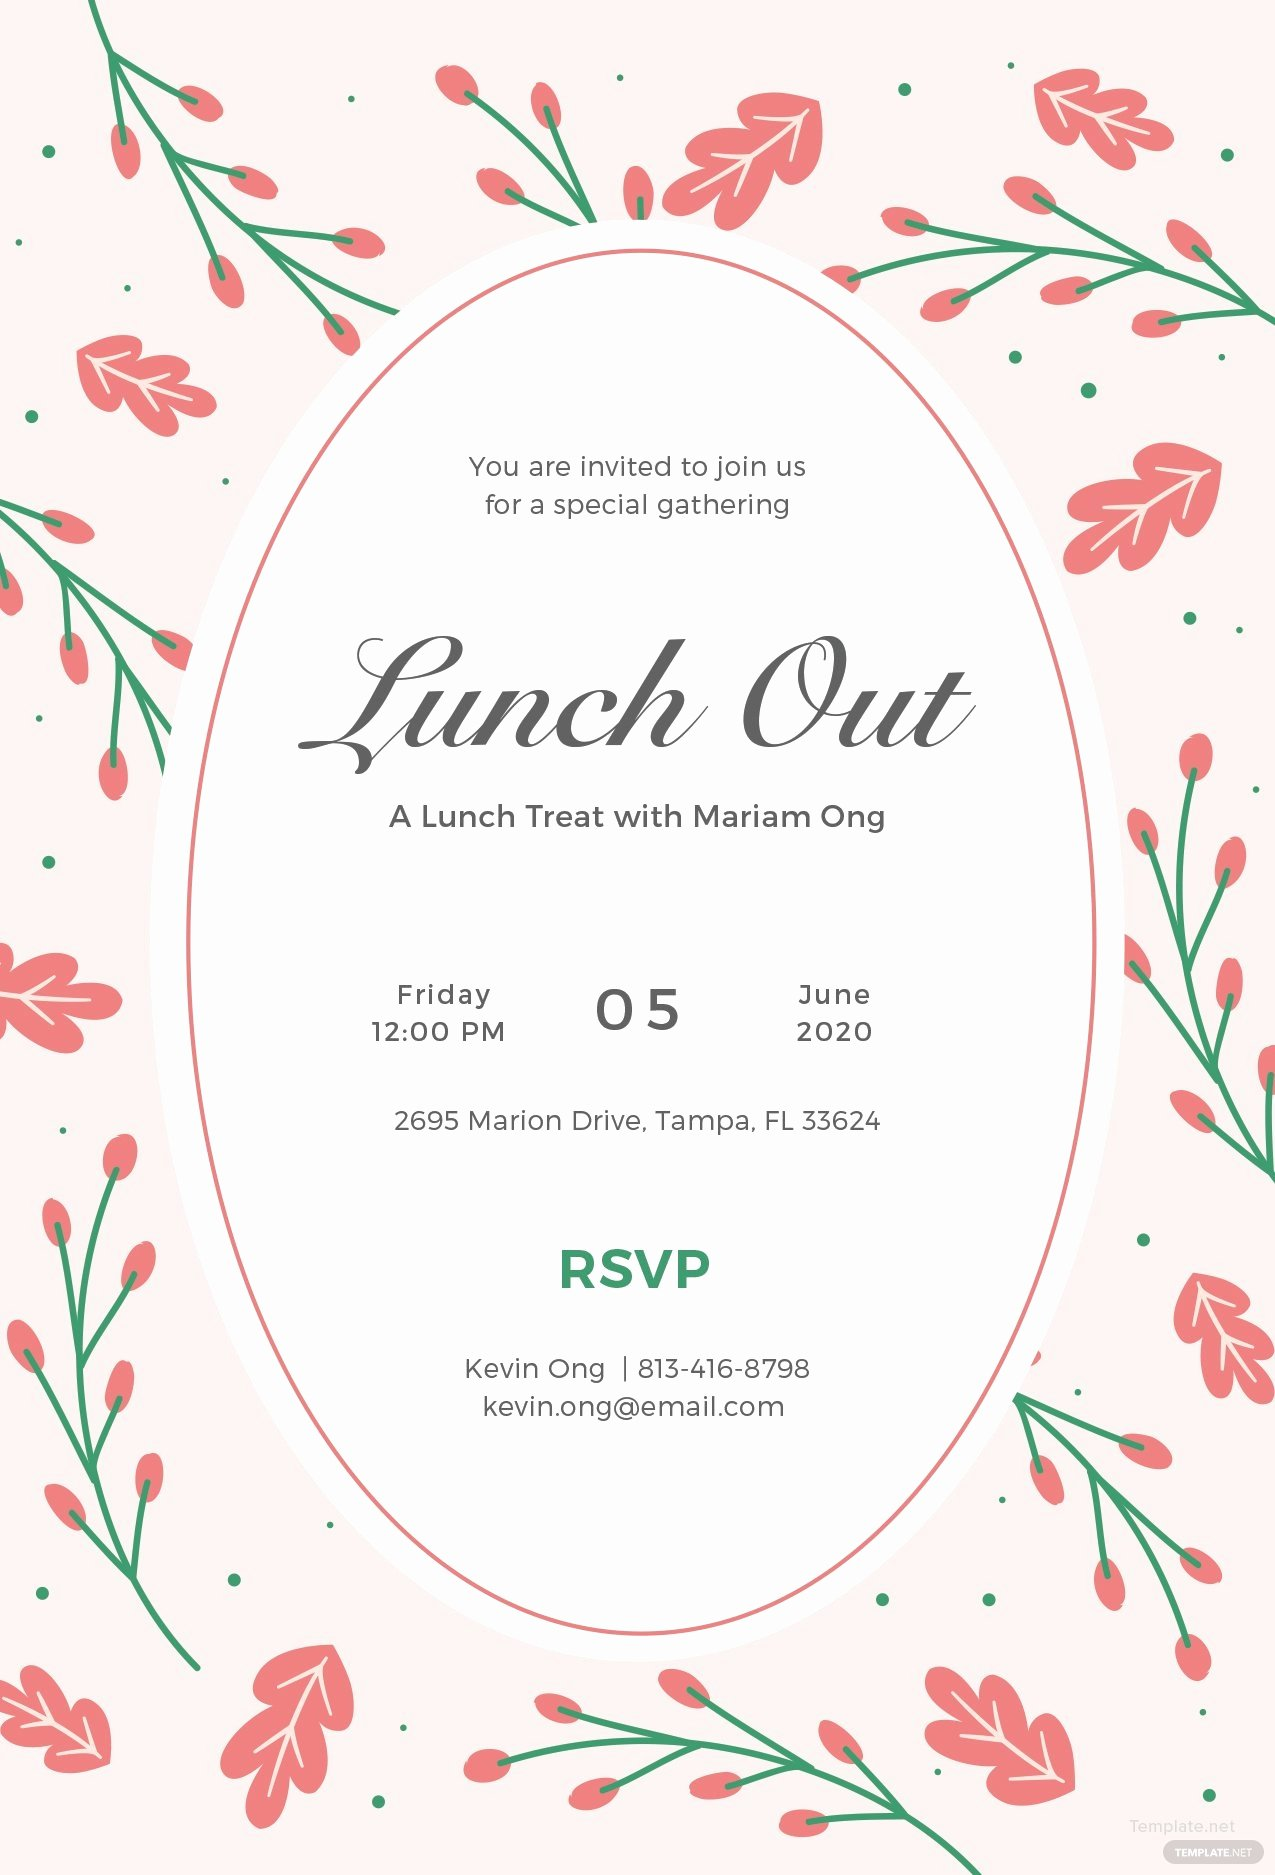 Lunch Invitation Template Free Inspirational Free Lunch Invitation Template In Illustrator